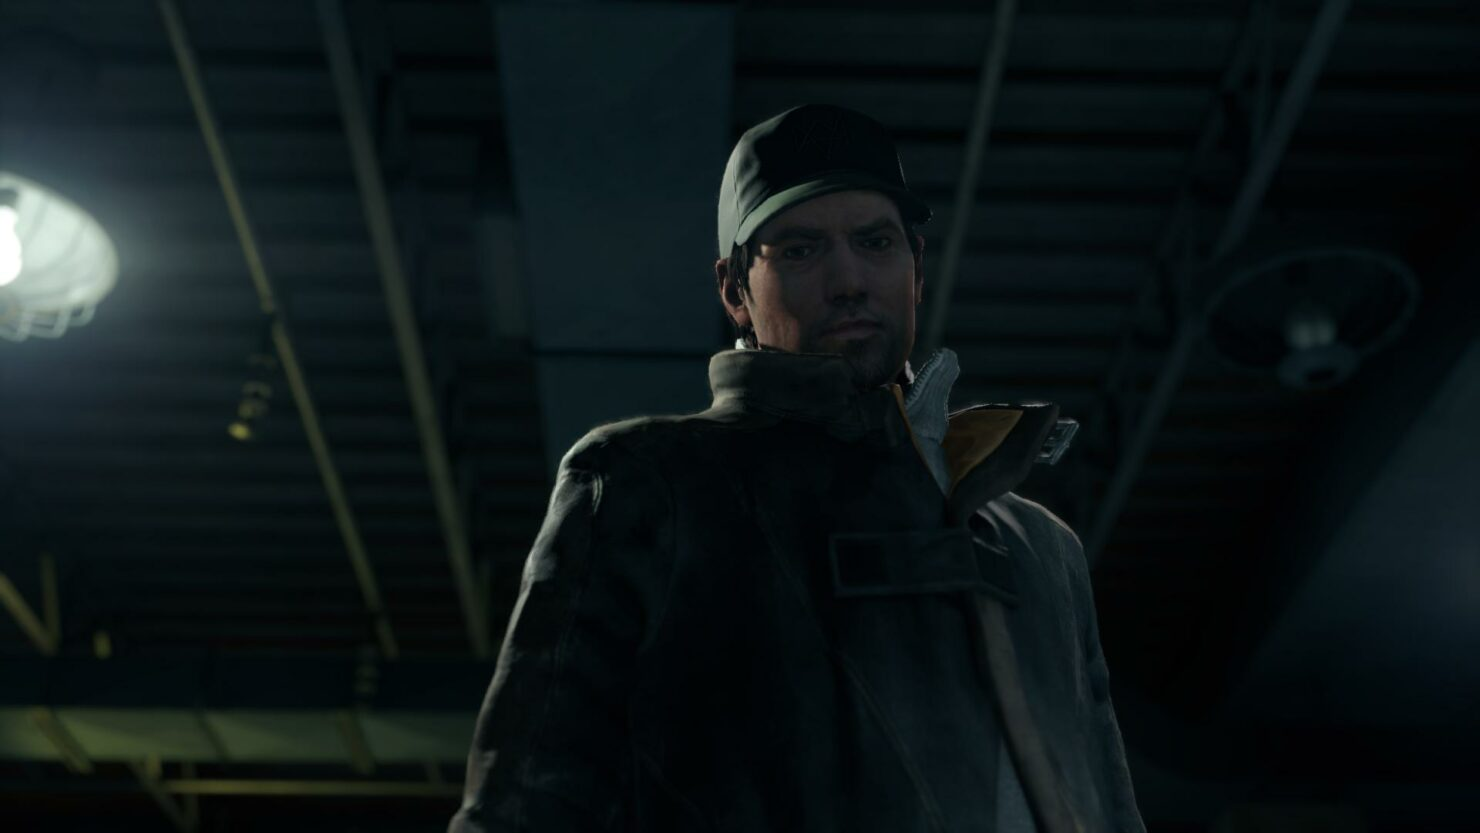 watch_dogs-2014-05-24-10-34-04-93